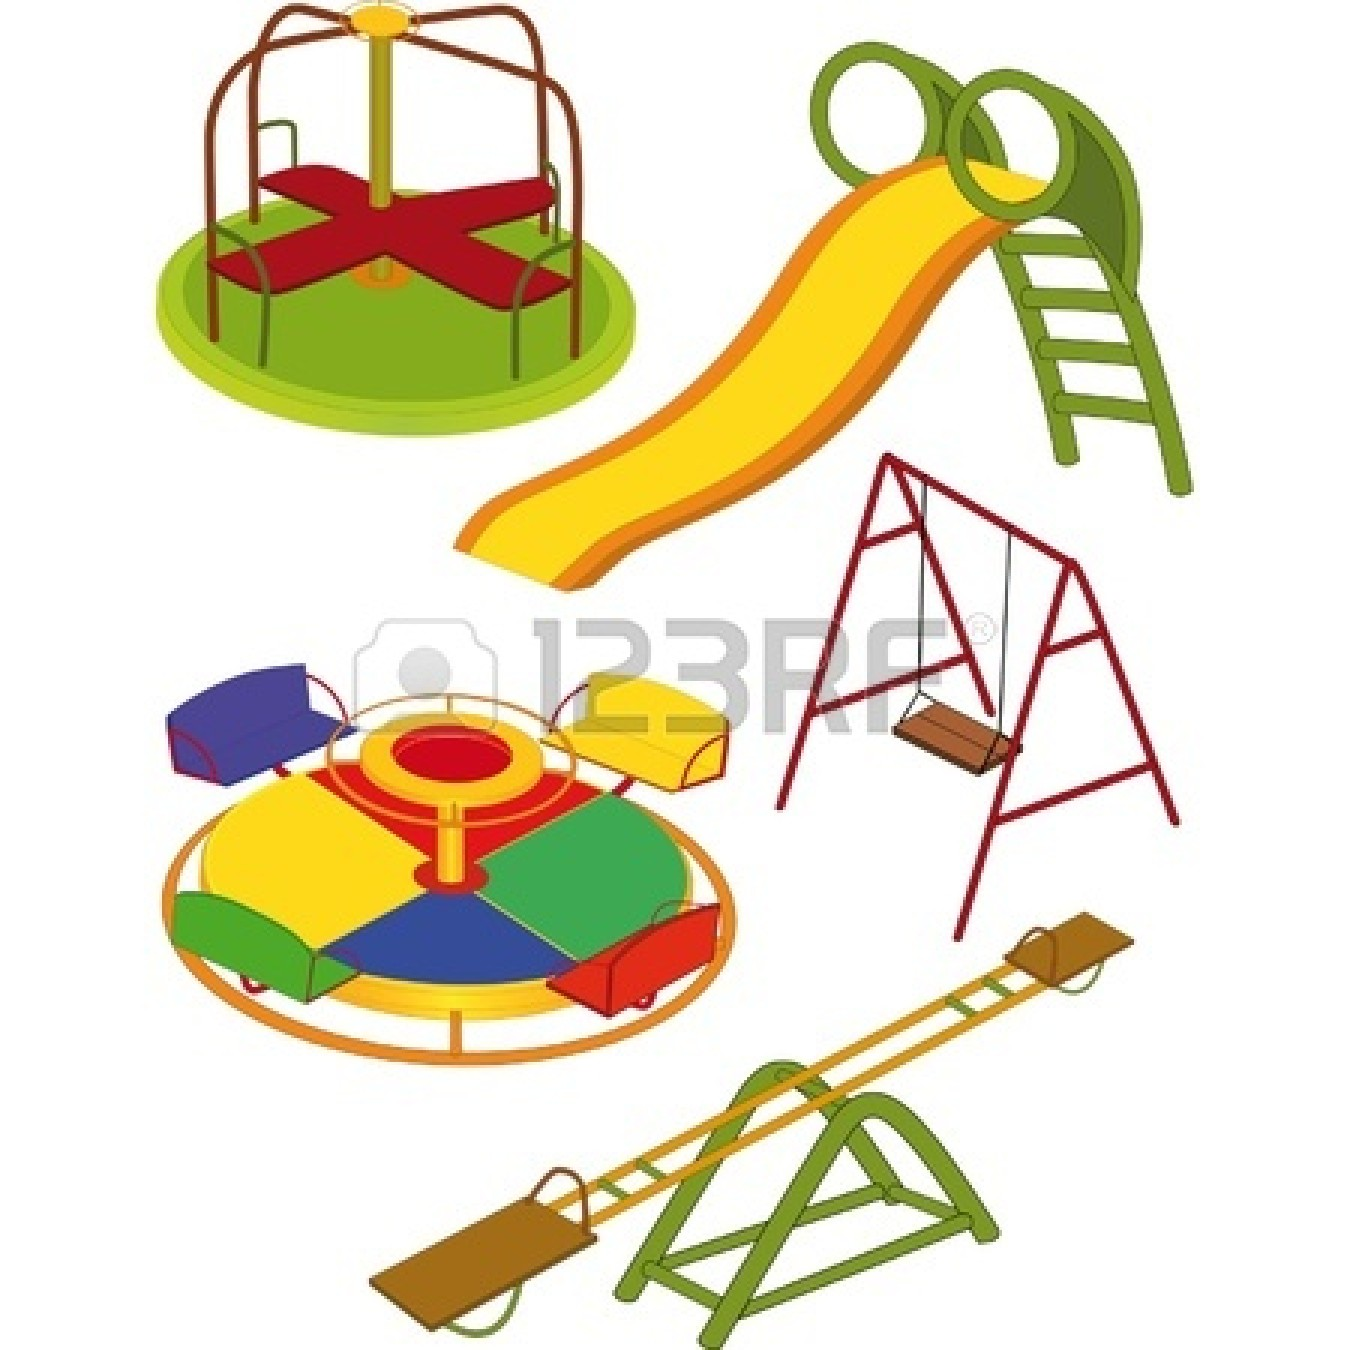 Playground swing set clipart suggest